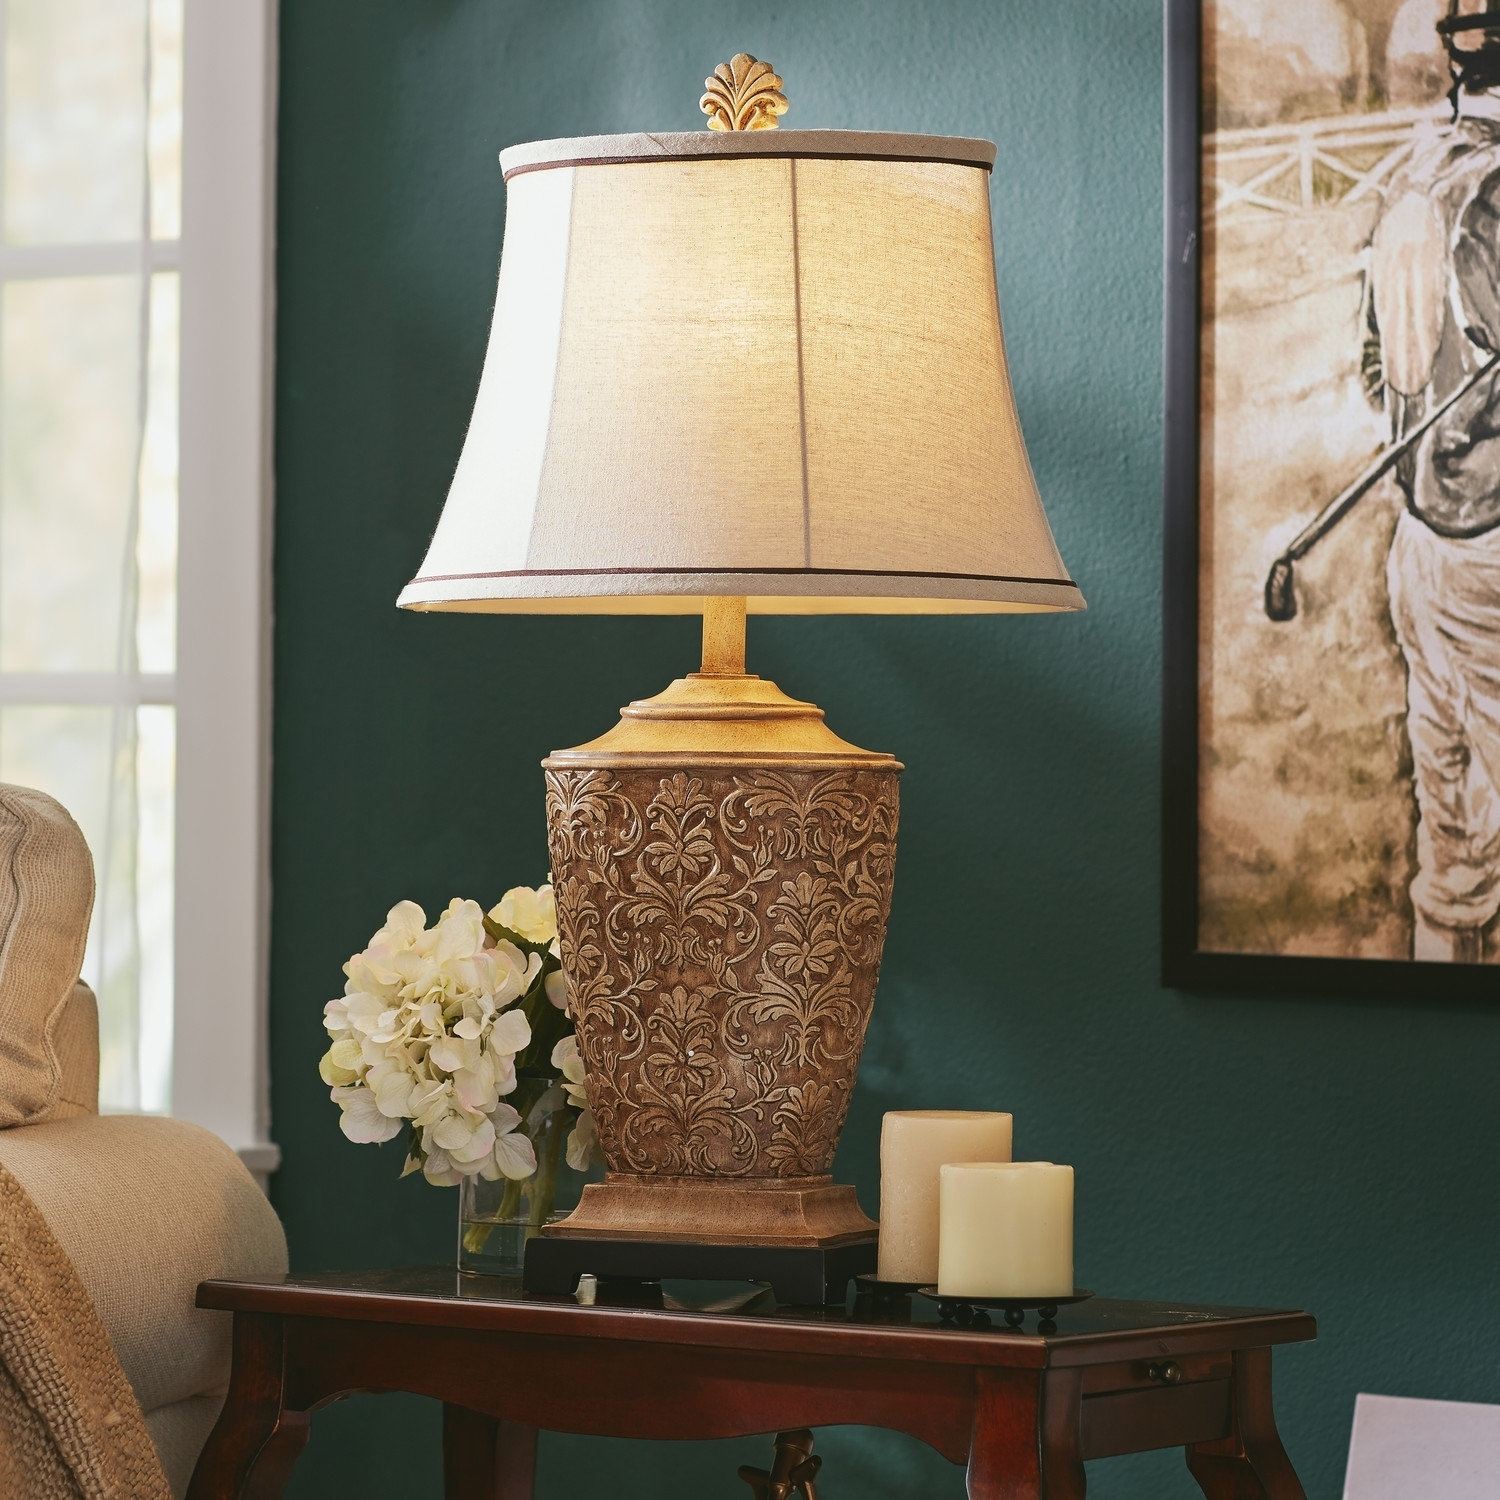 Popular Photo of Table Lamps For Living Room